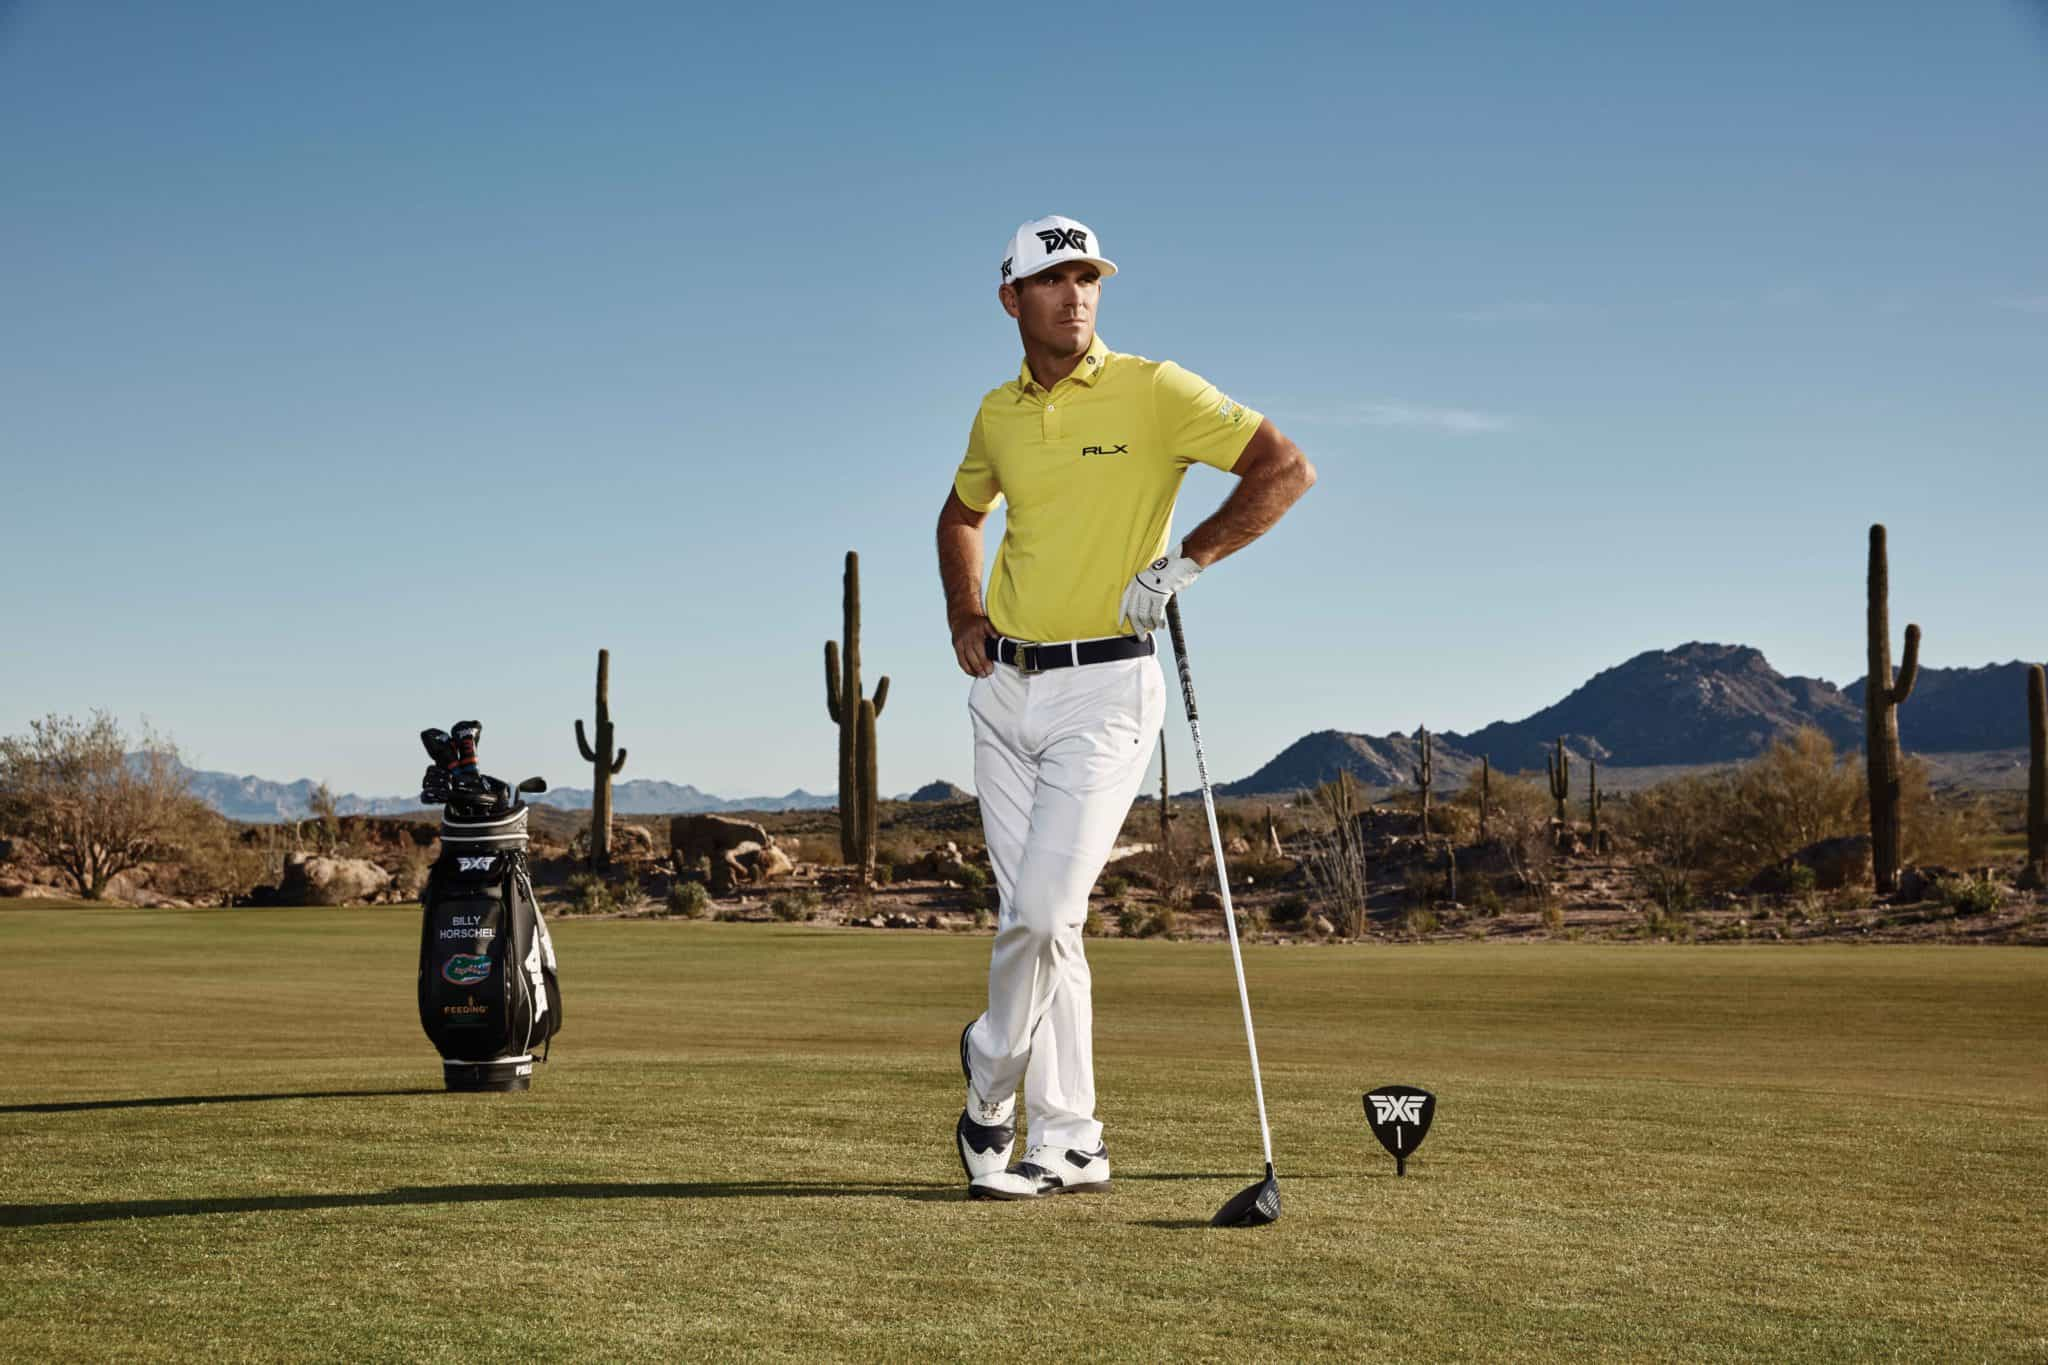 PXG's Bob Parsons is taking the fight to the golf industry